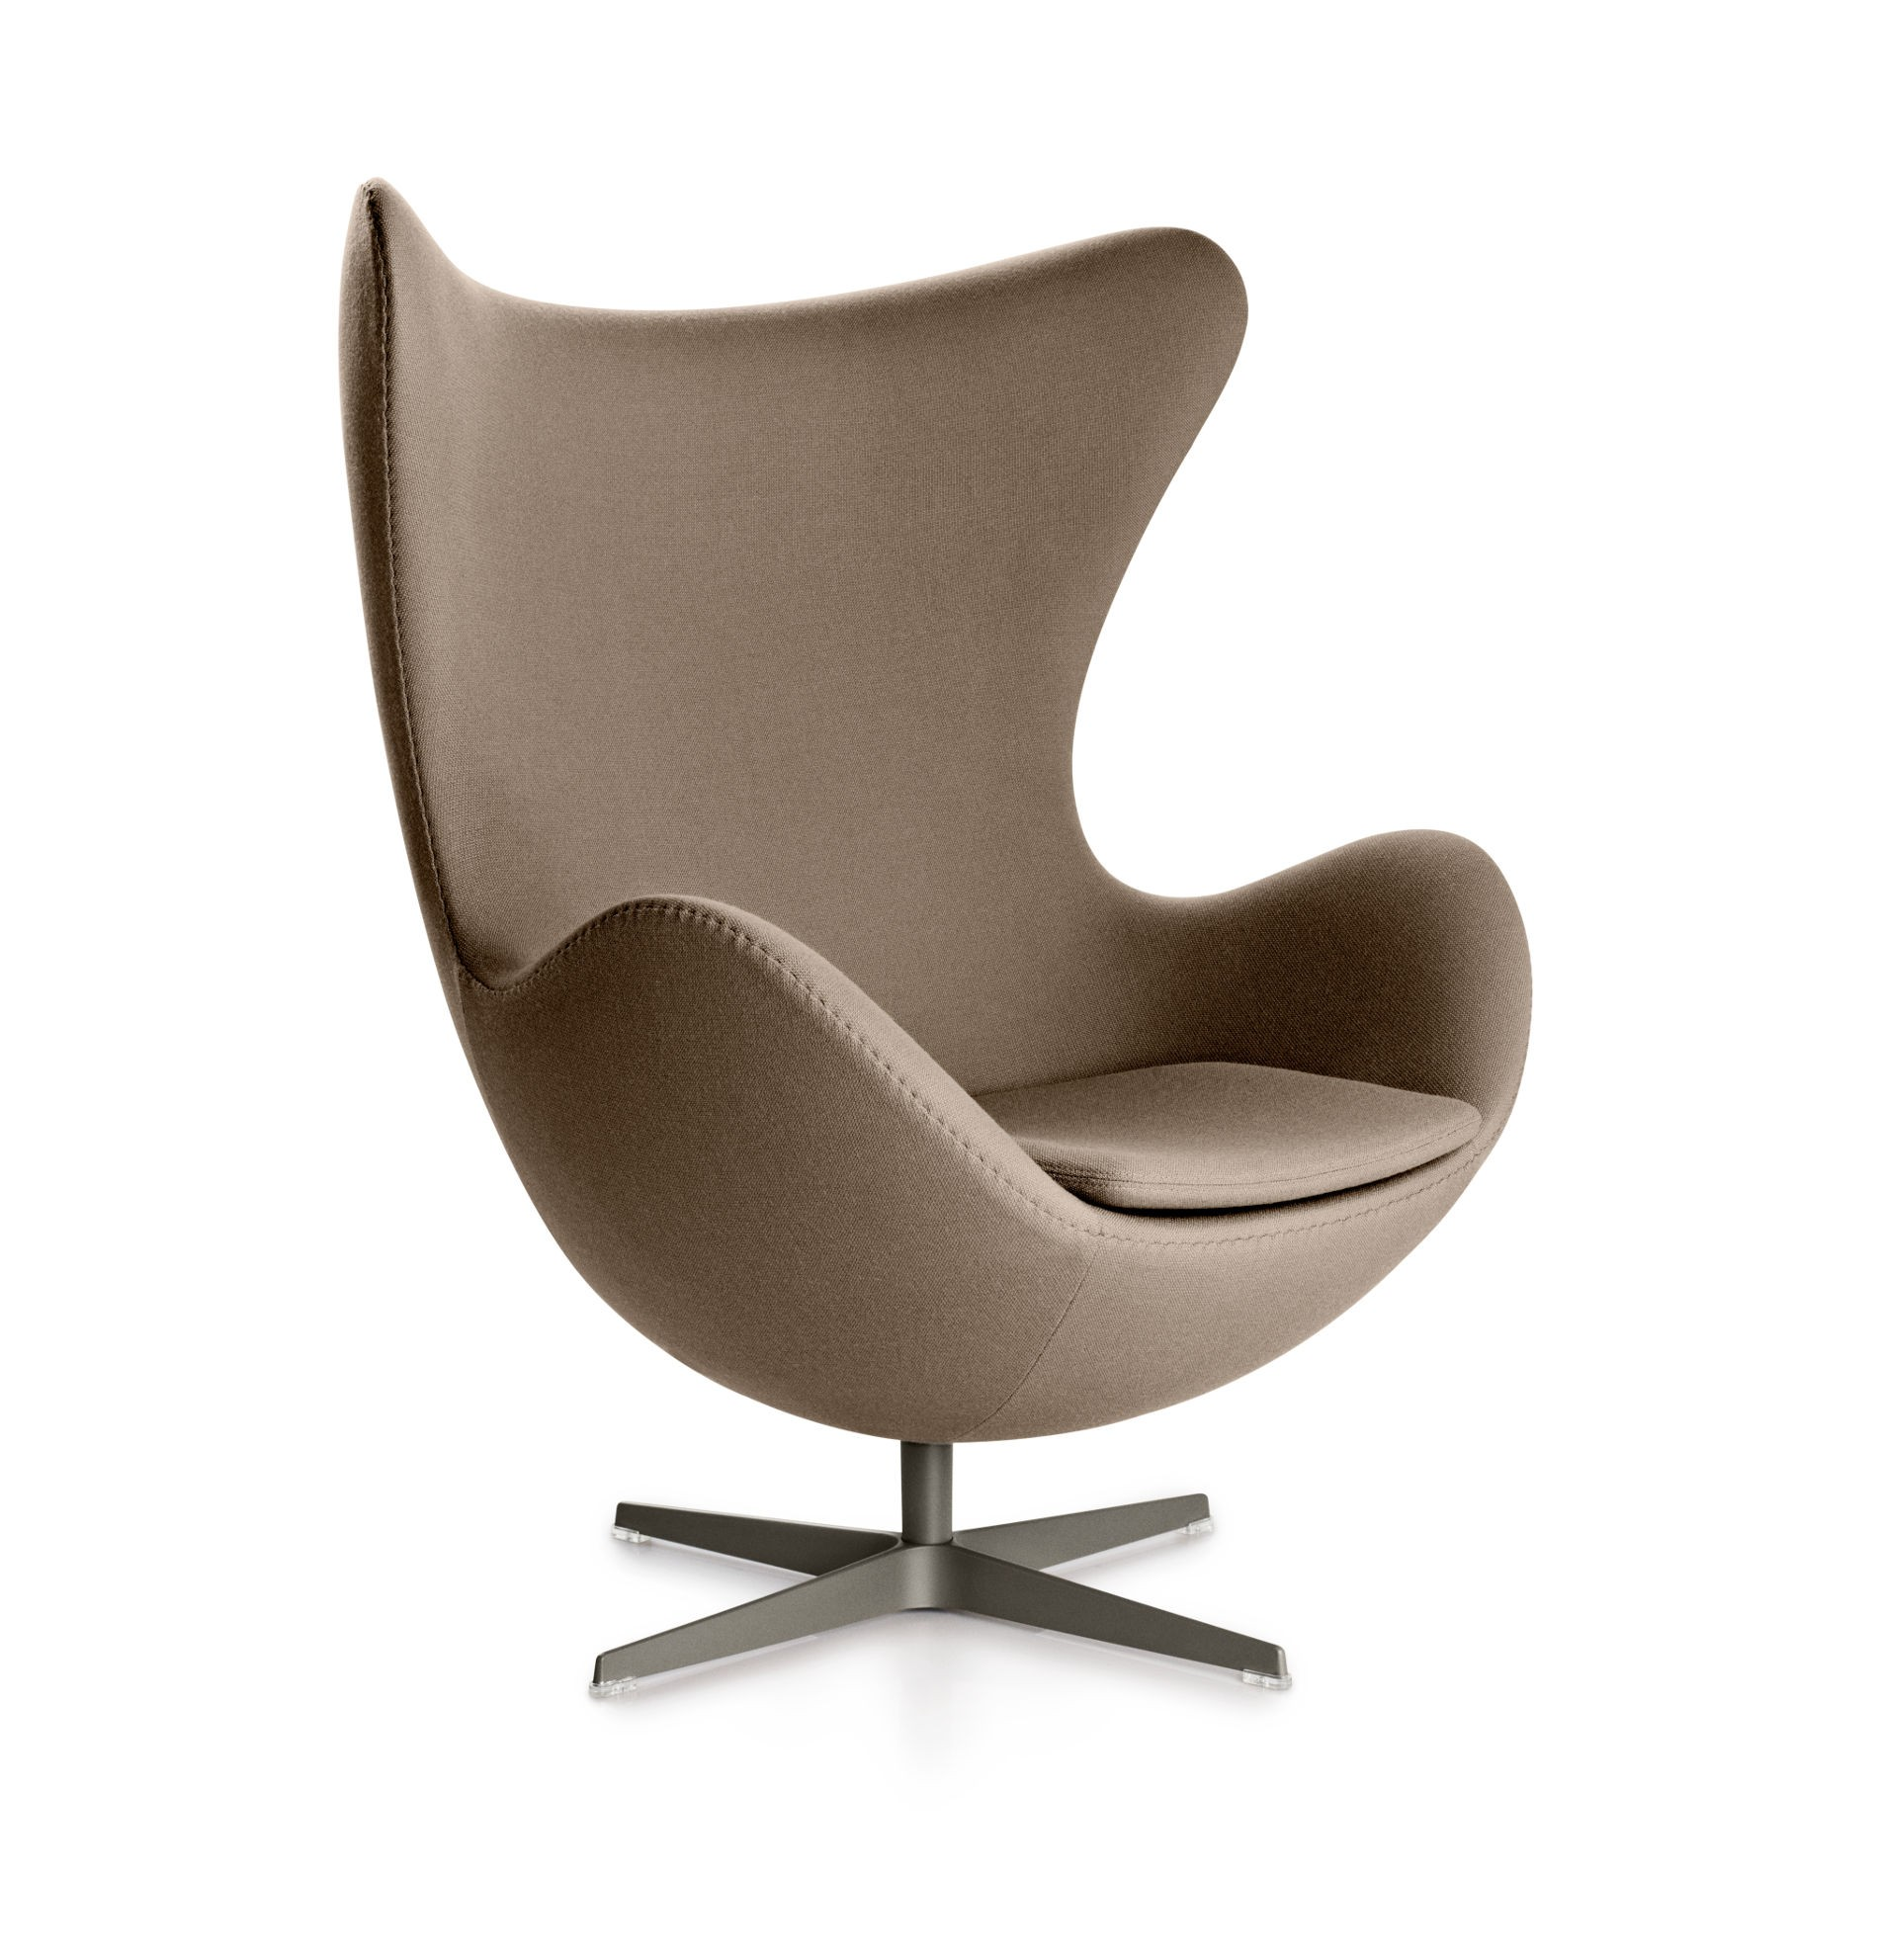 fritz hansen egg lounge chair. Black Bedroom Furniture Sets. Home Design Ideas